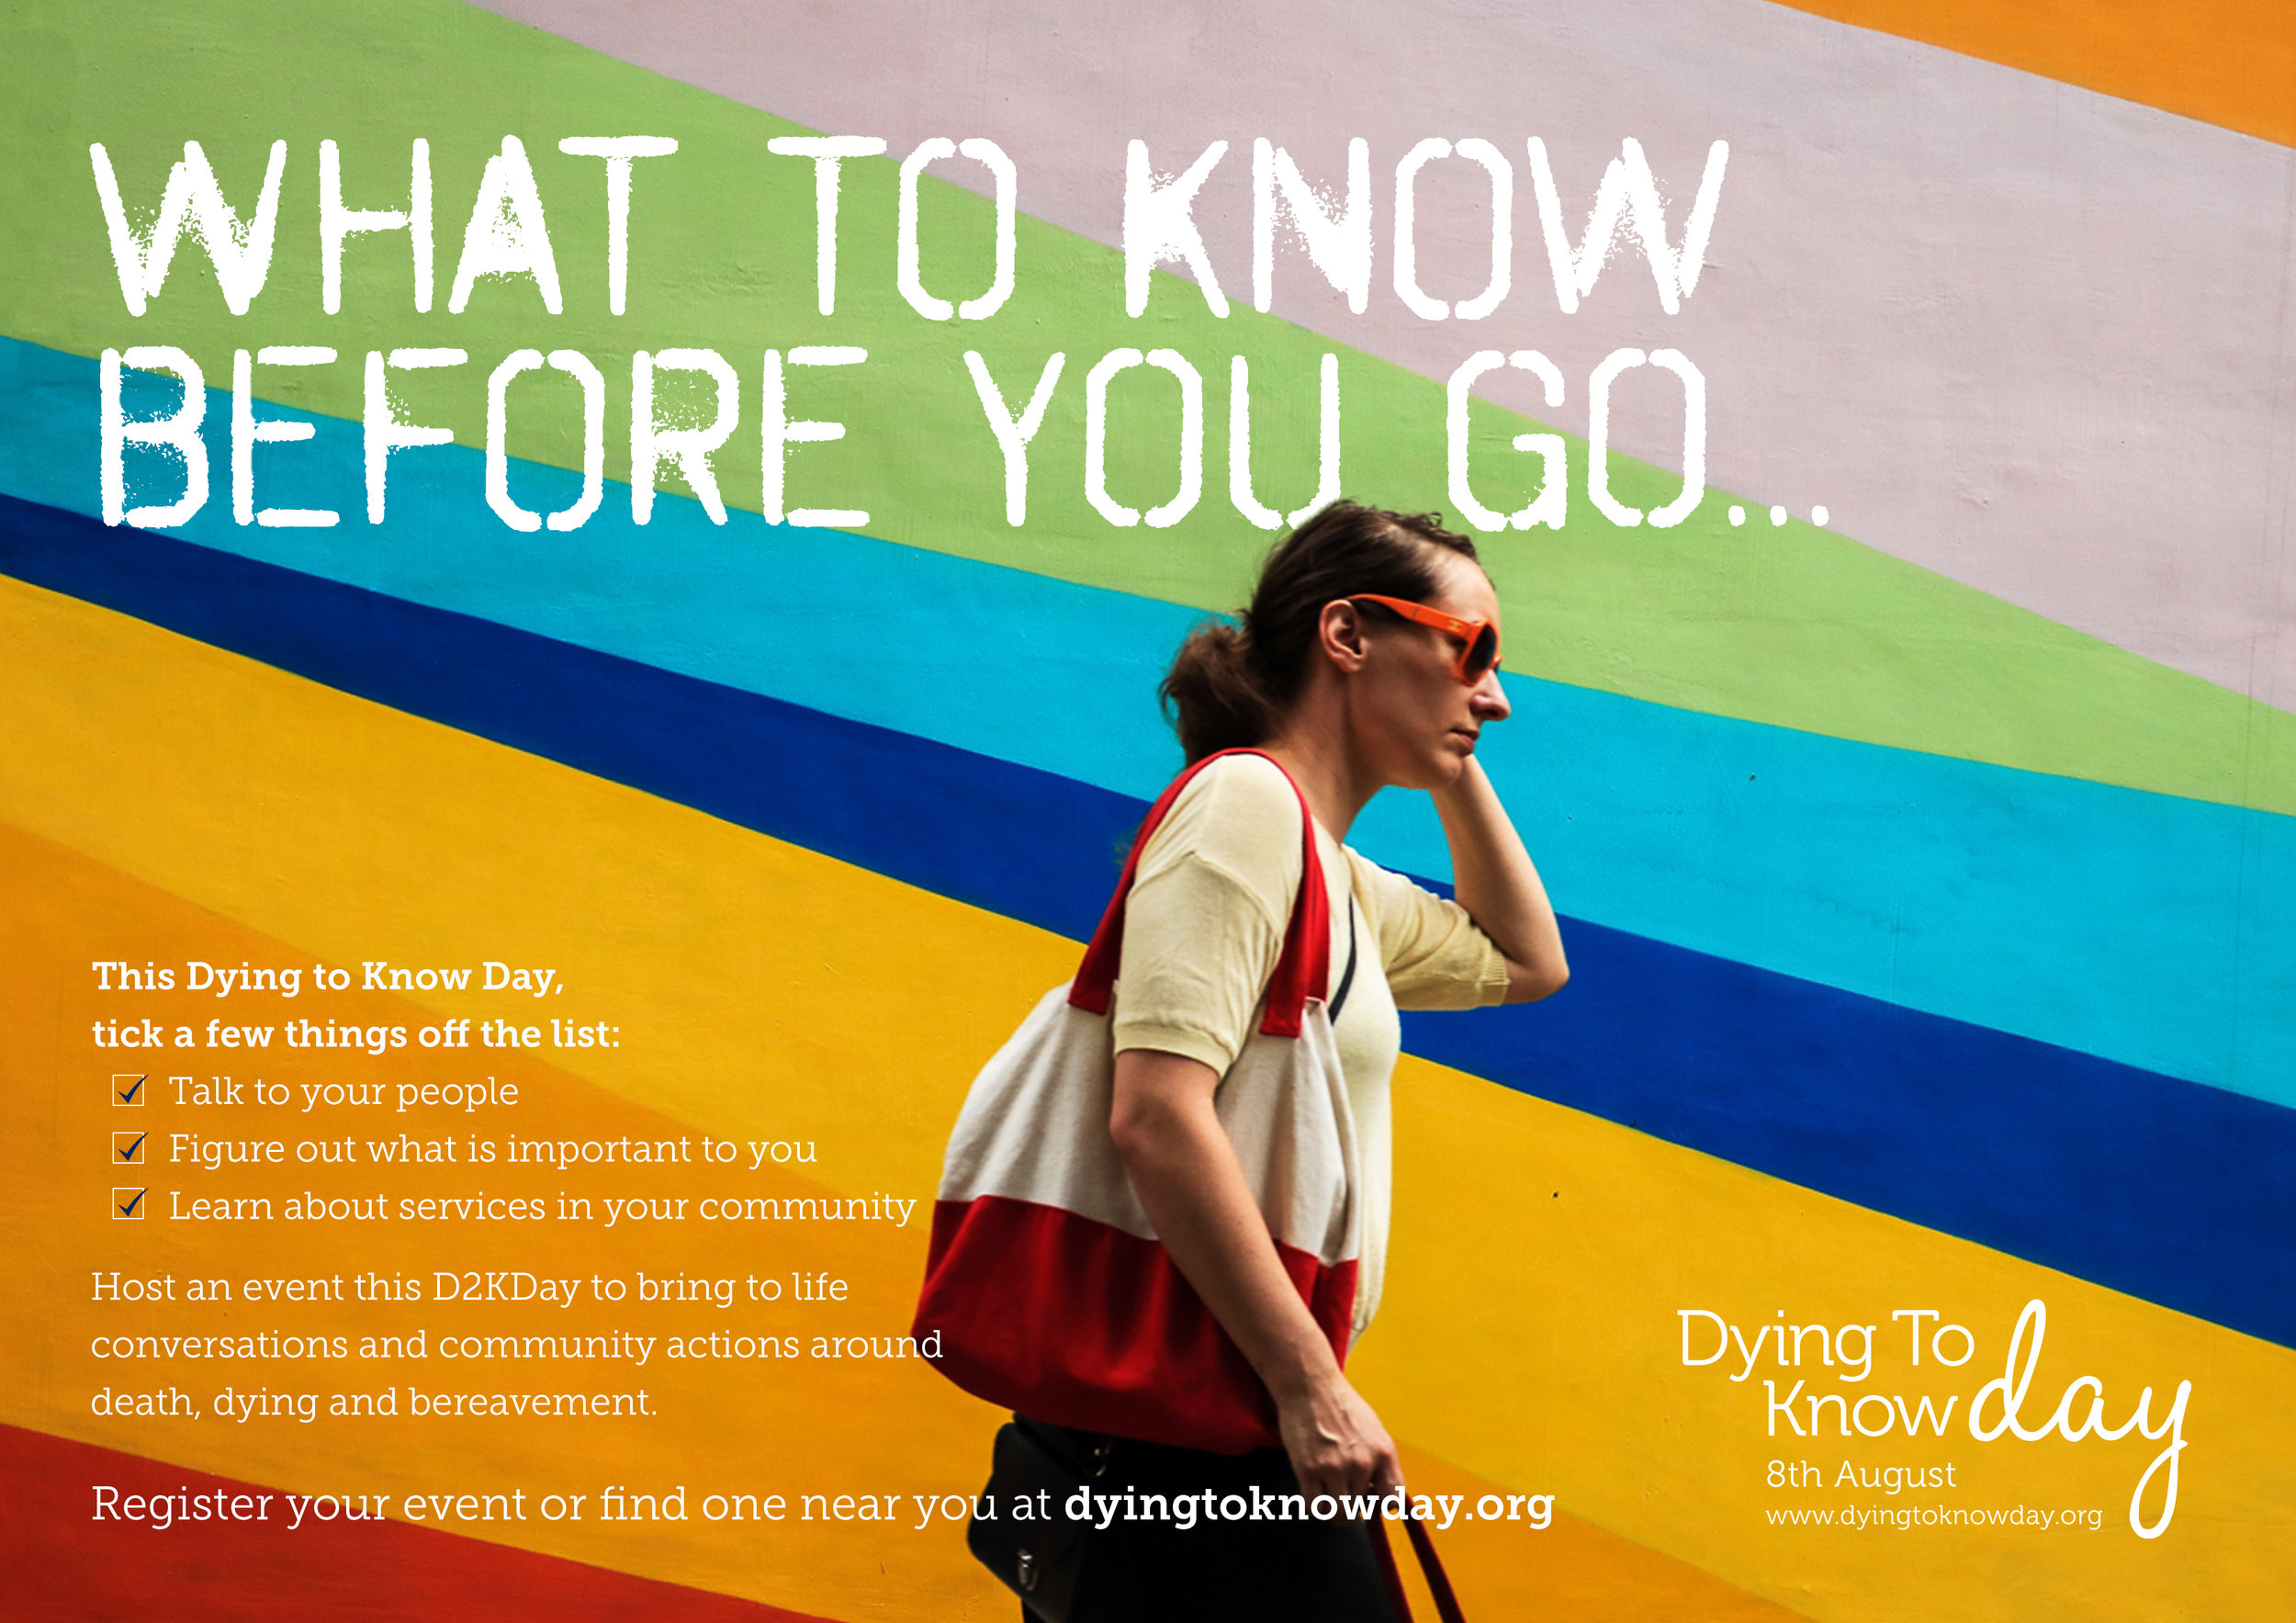 Know Before You Go - A4.jpg